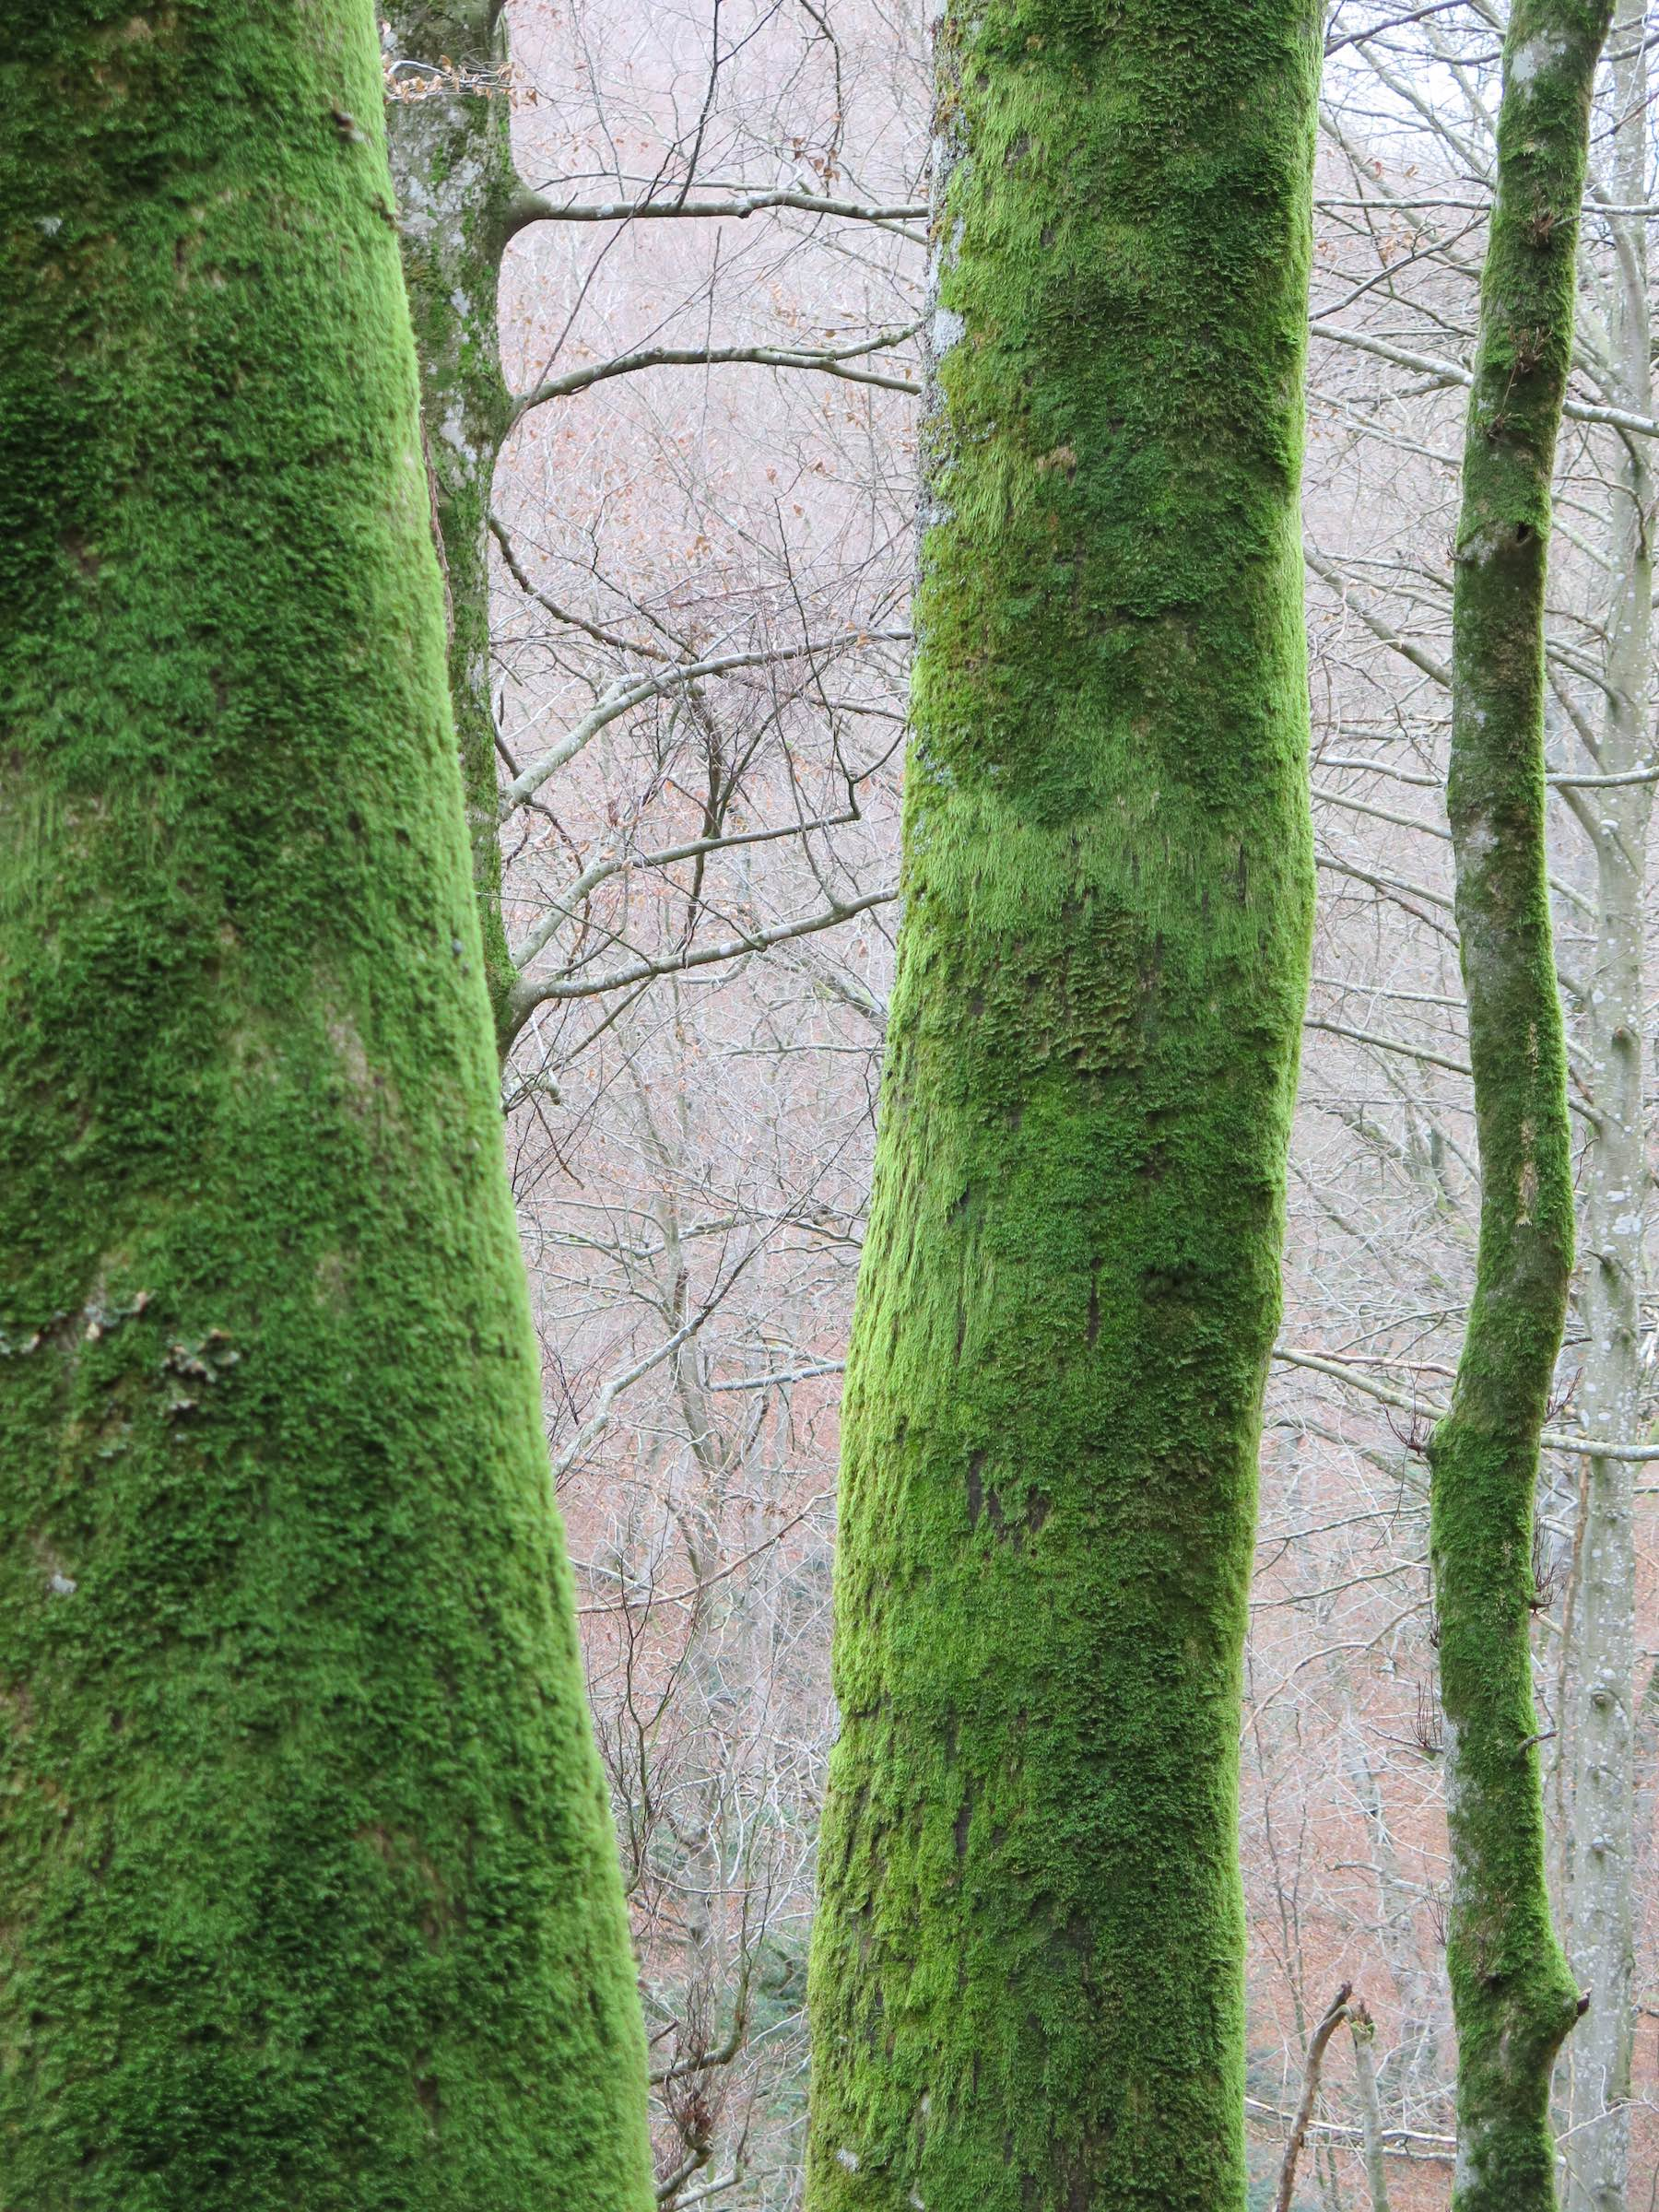 Trees and moss. Image by Martin Ázua